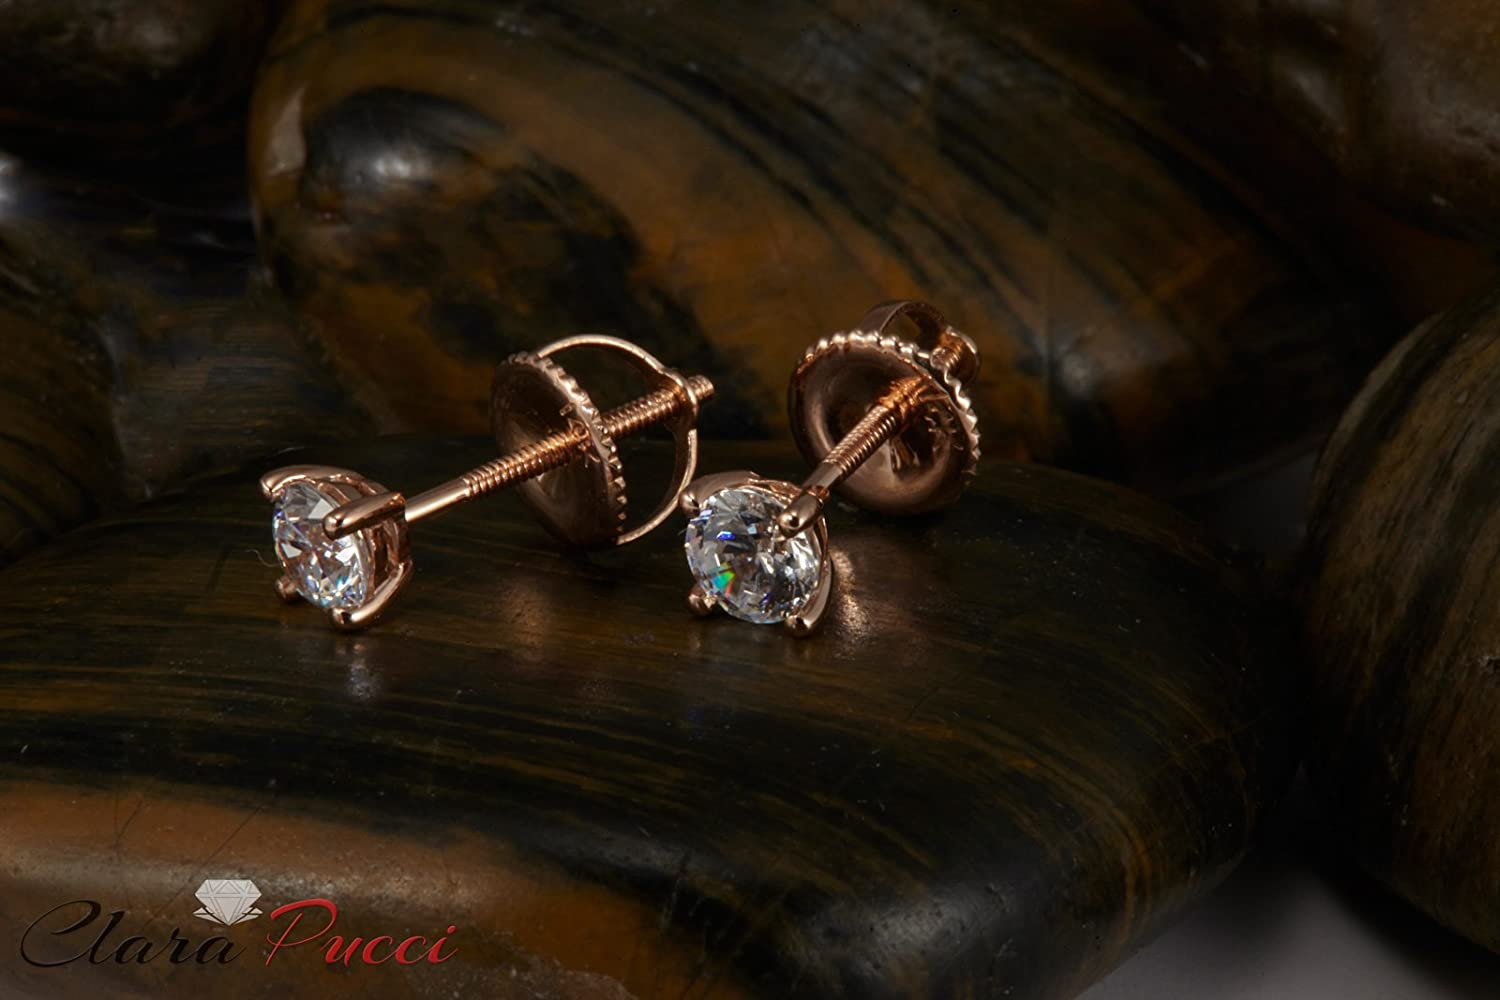 0.4ct Brilliant Round Cut Solitaire Highest Quality Moissanite Unisex Anniversary Gift Stud Earrings Real Solid 14k Rose Gold Screw Back